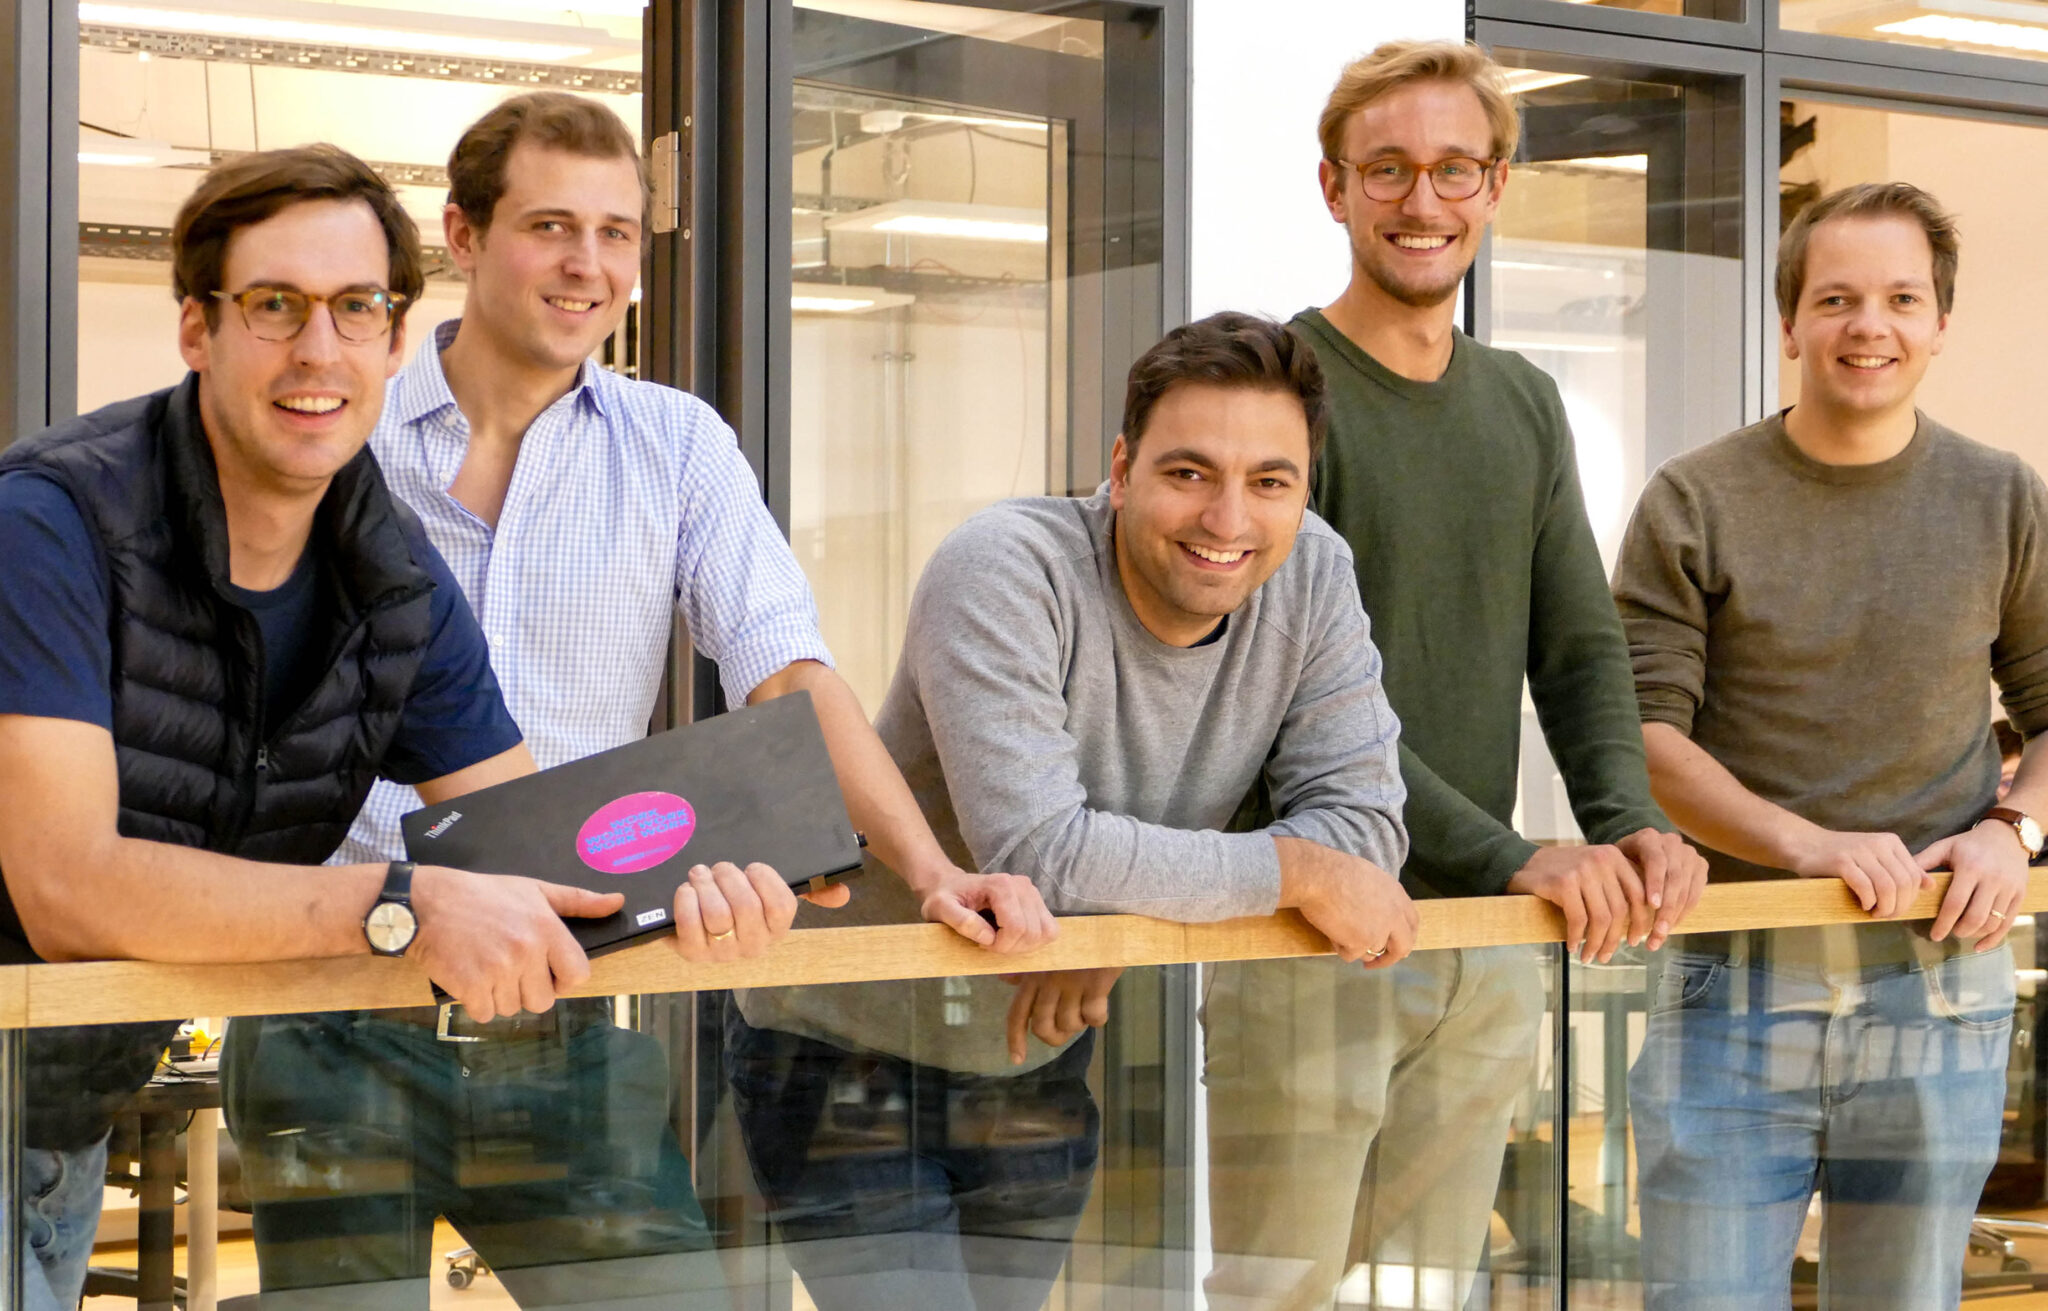 Berlin-based HR startup Zenjob has raised €15 million to connect ...